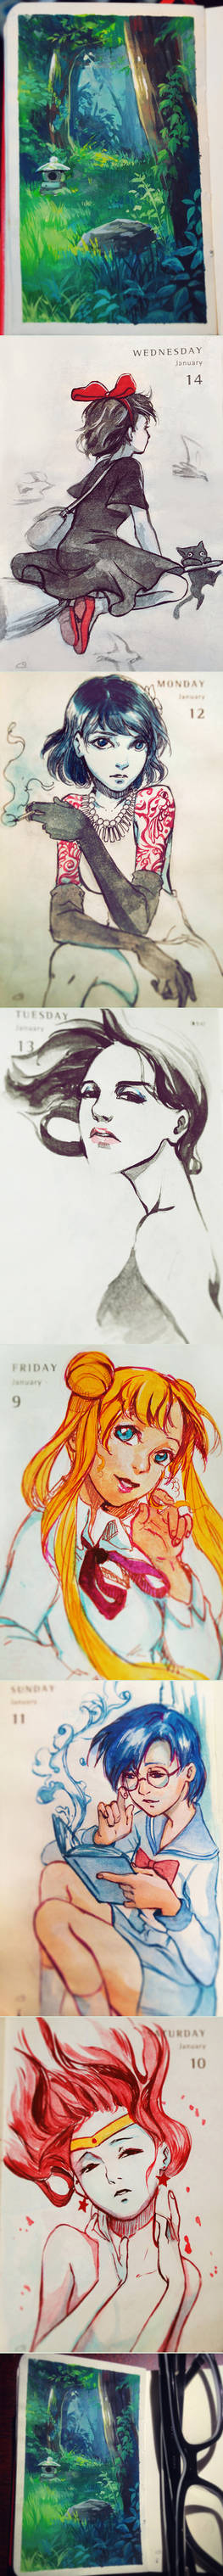 Daily Painting - week 2